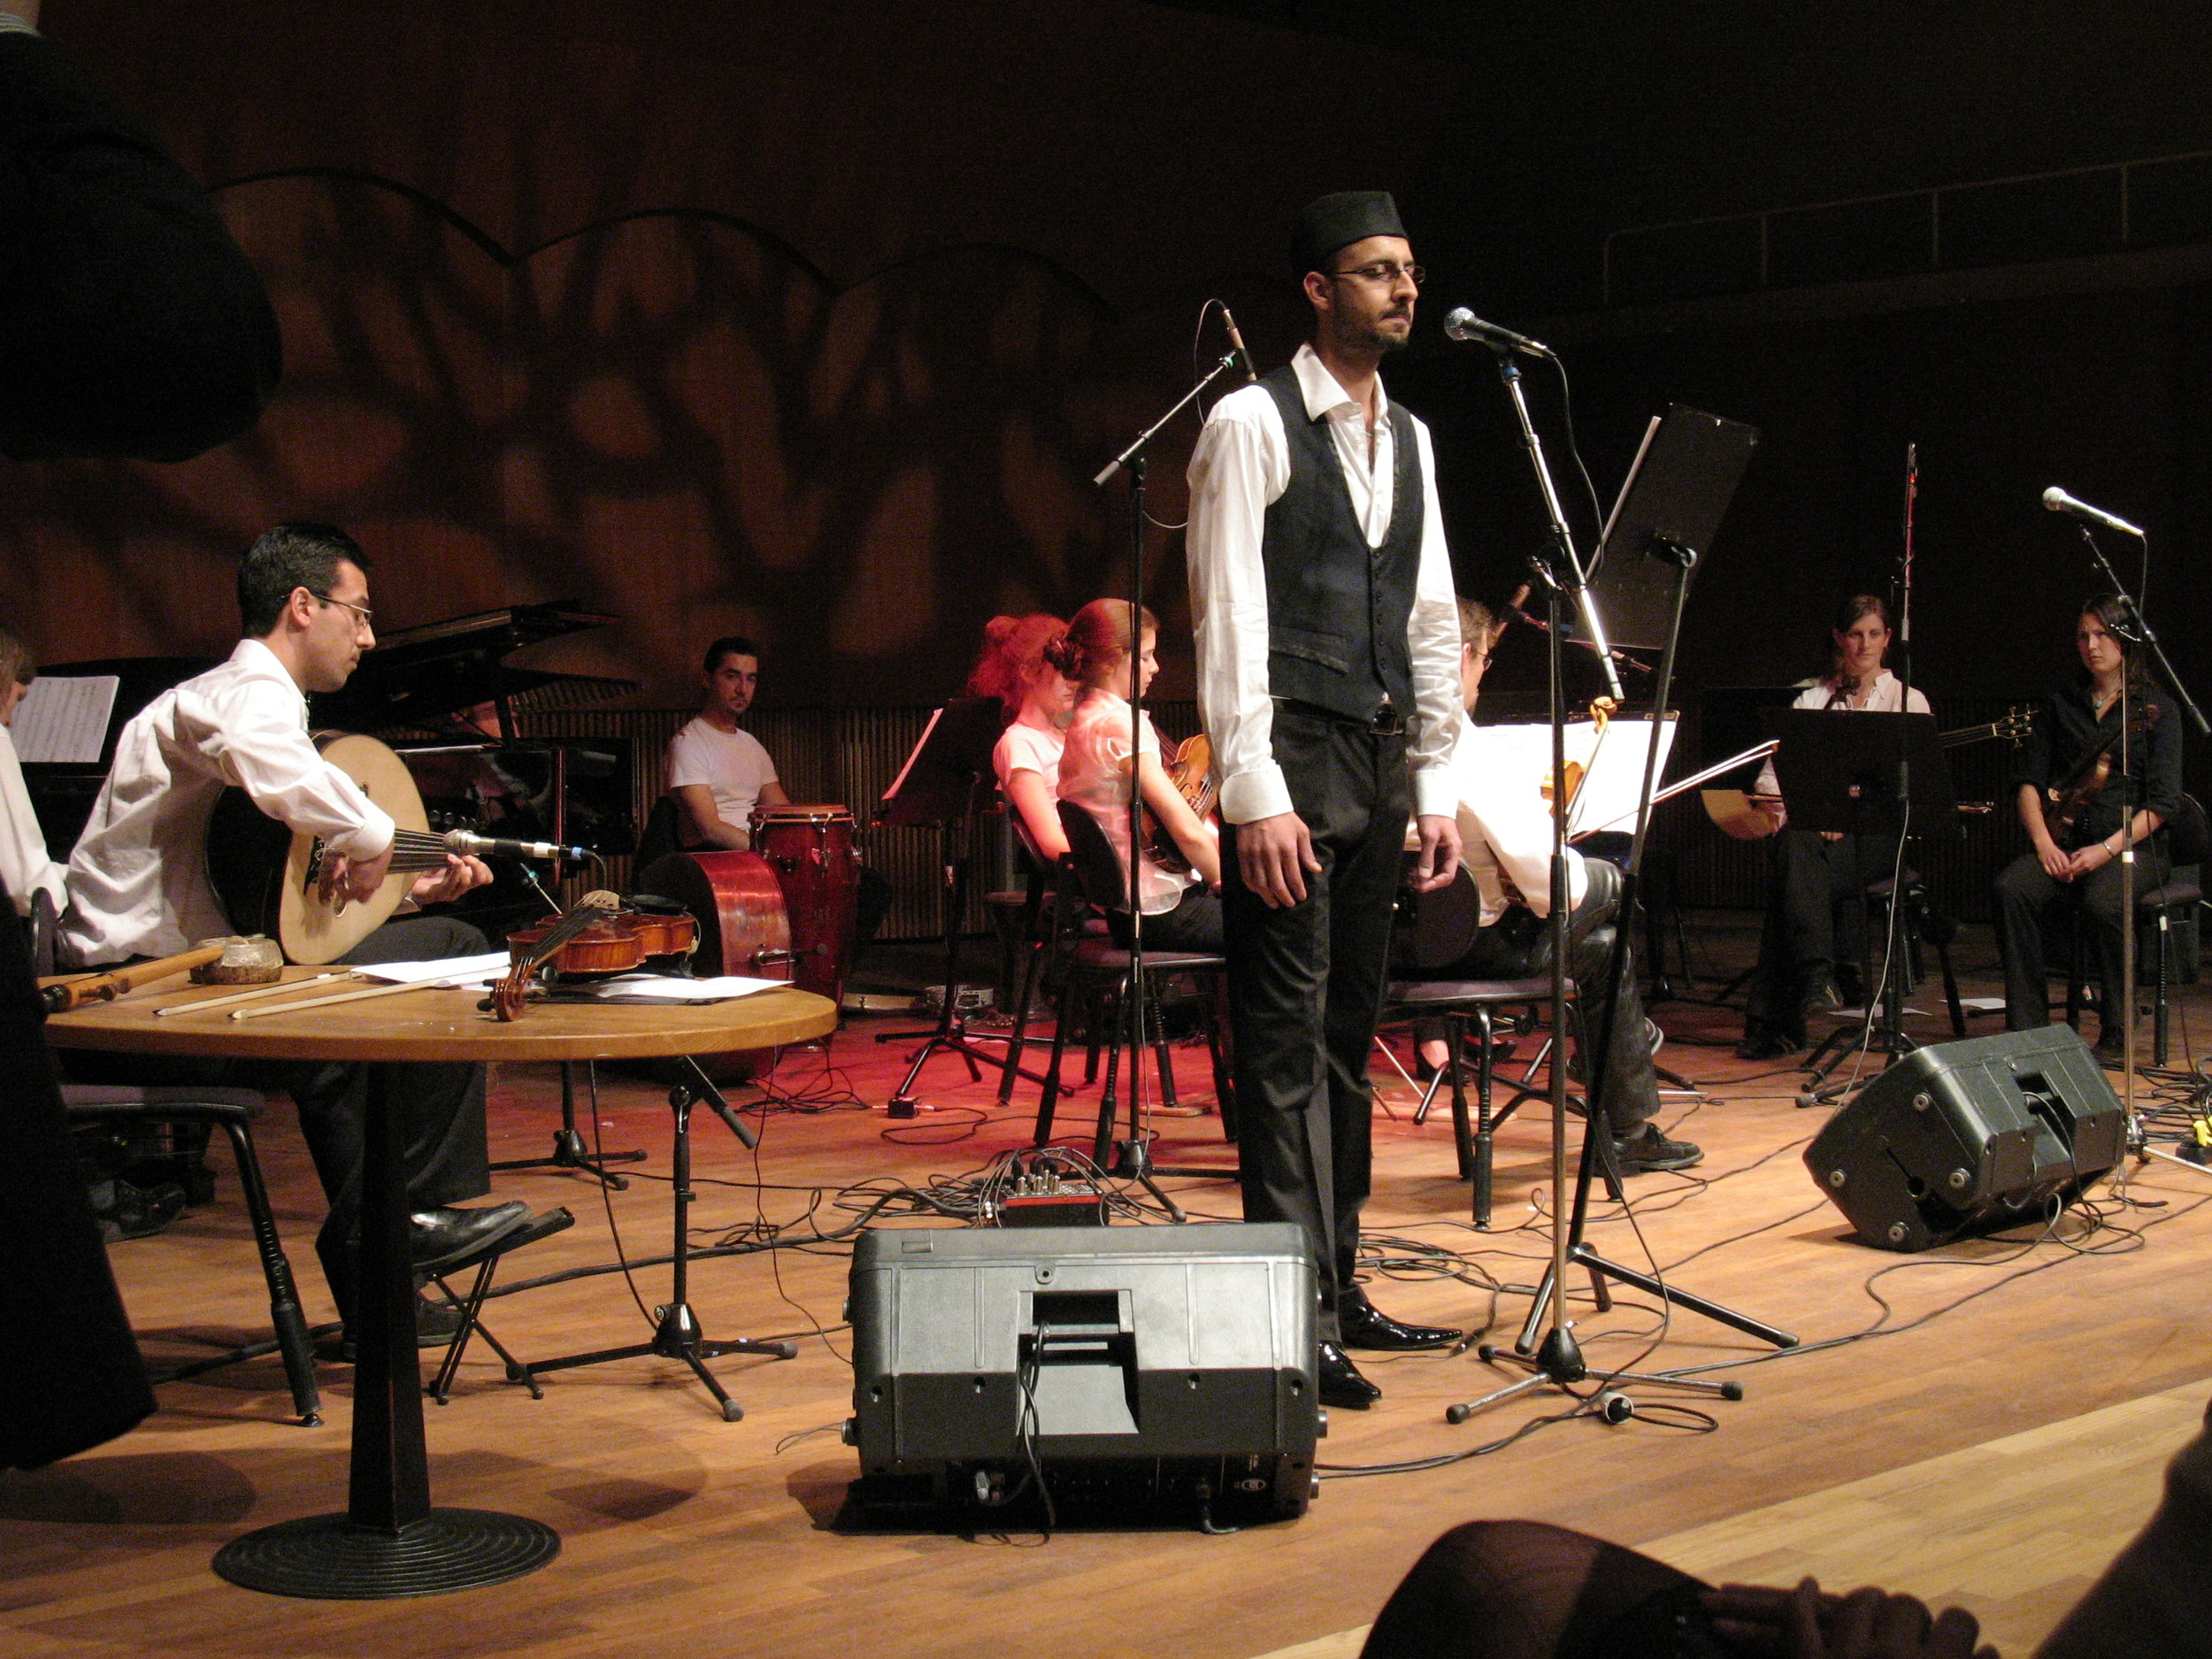 Pictures from the examination concert 023.jpg